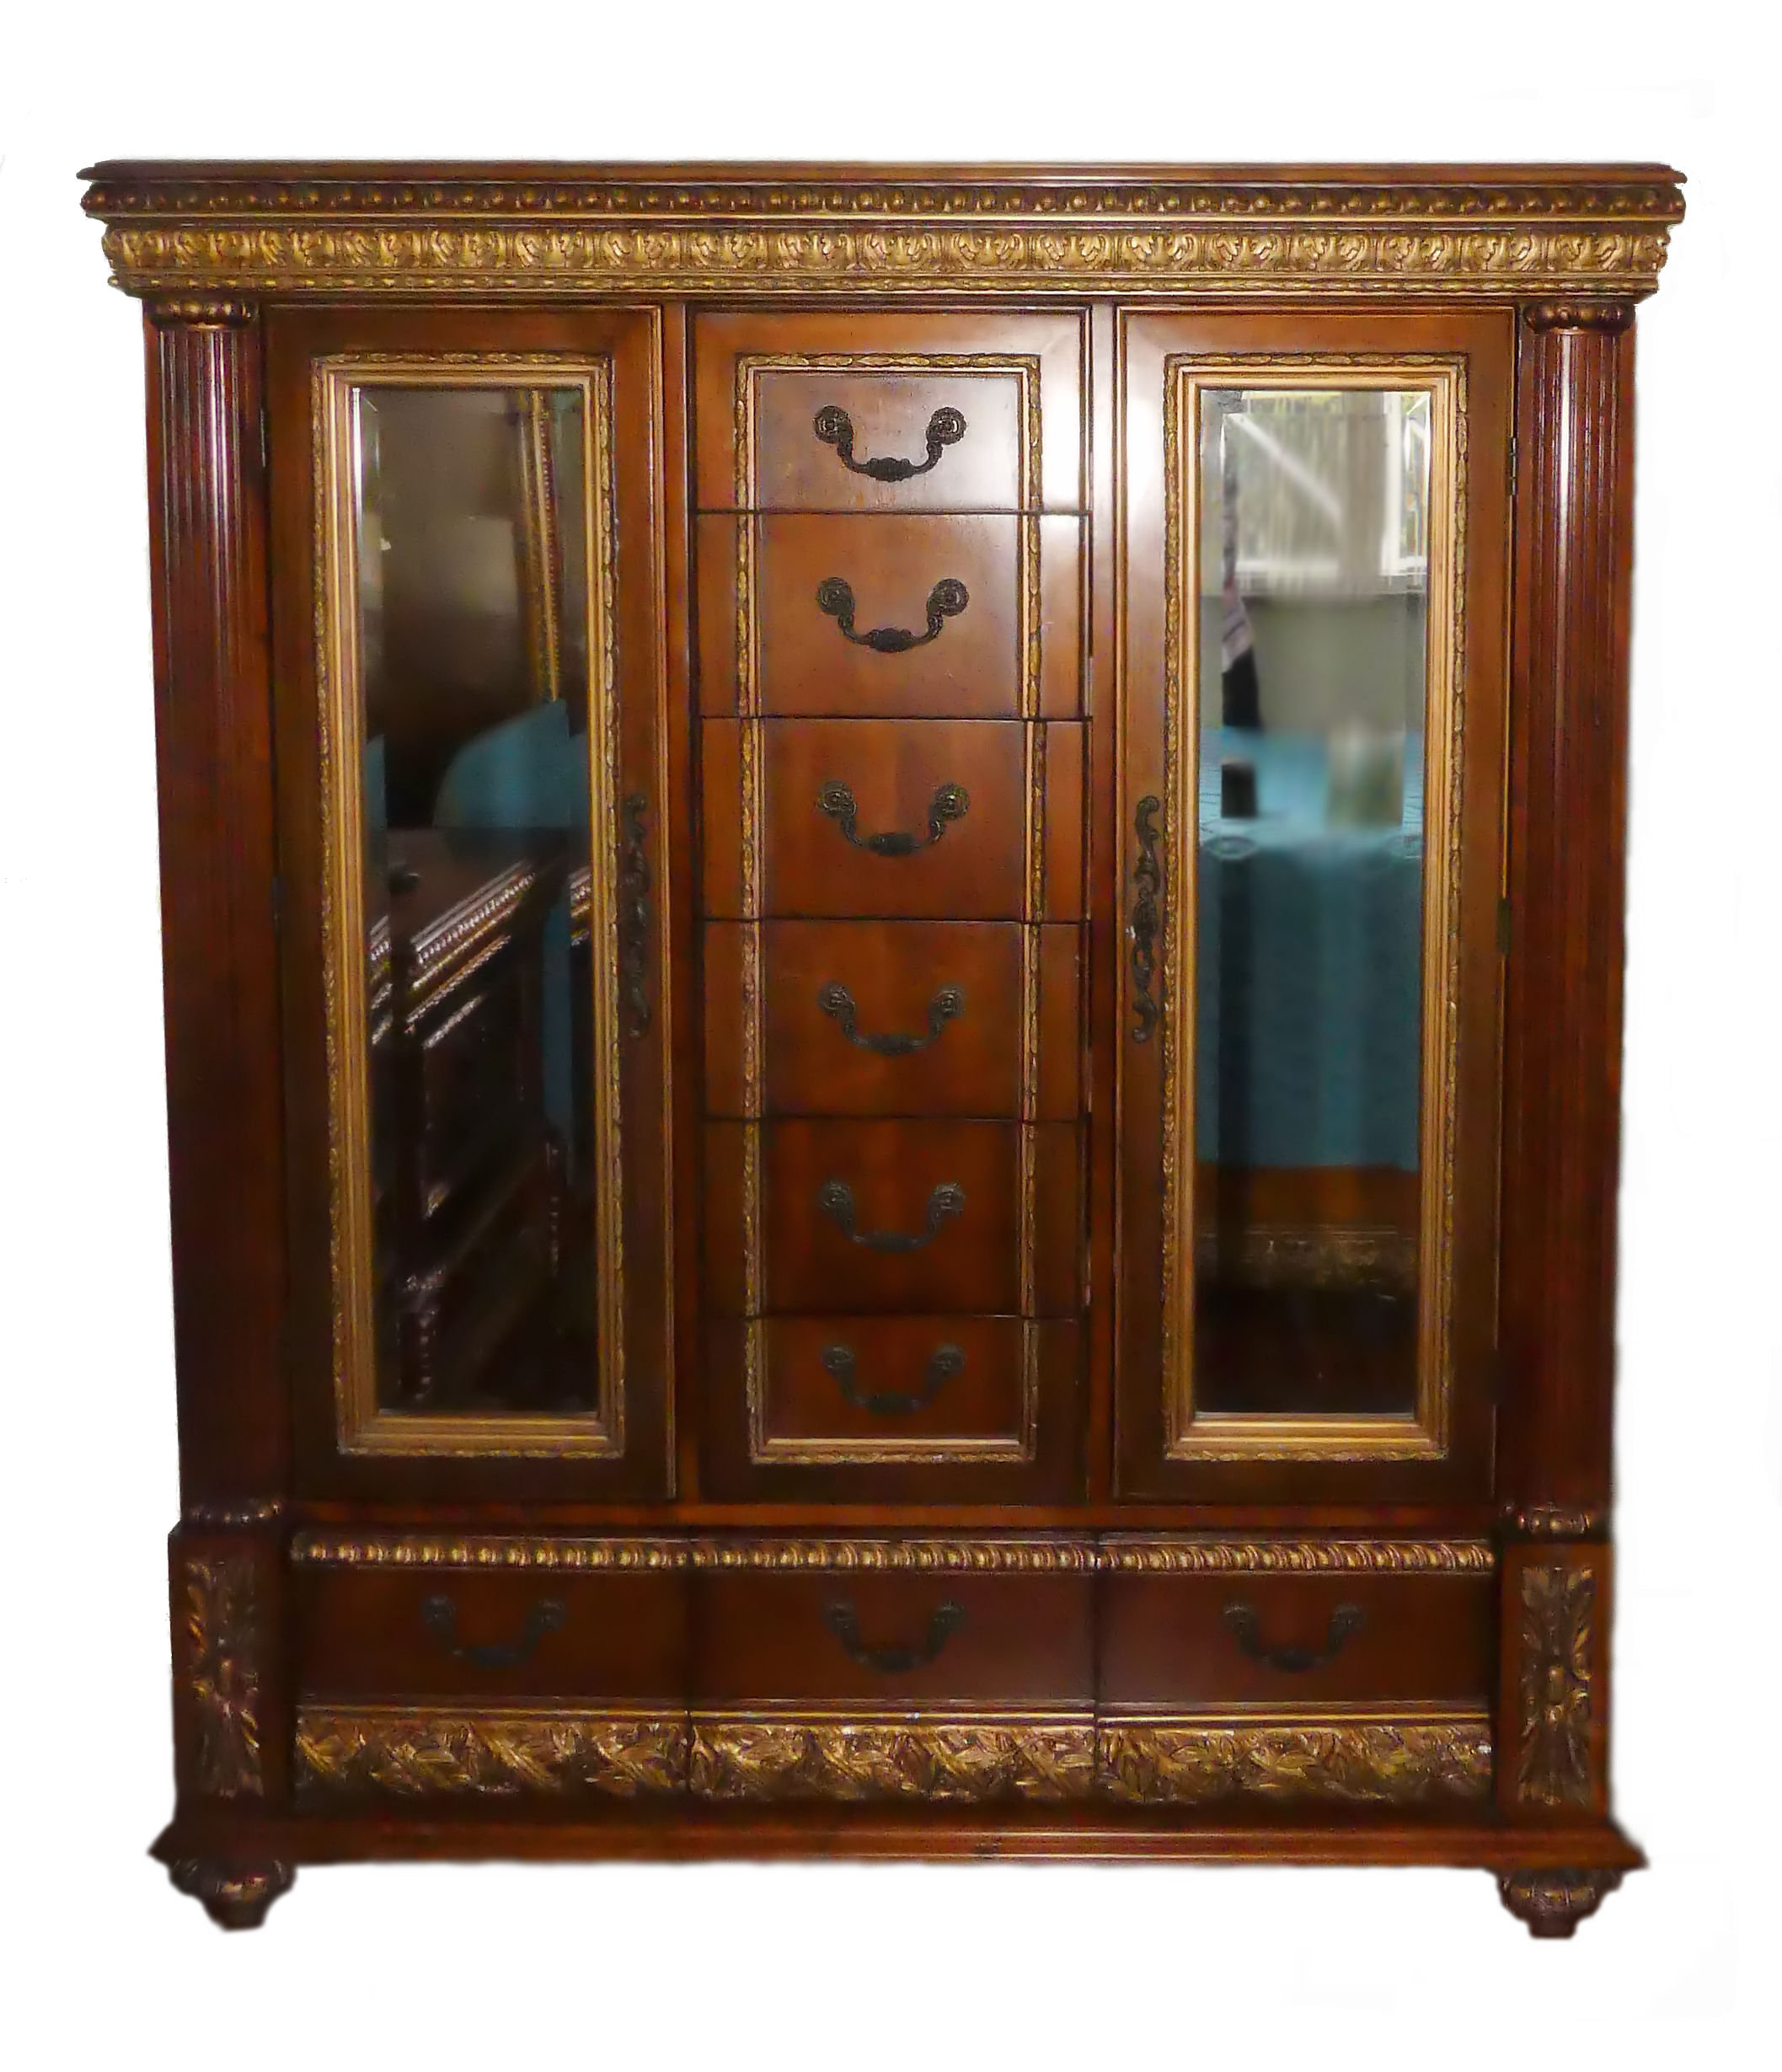 SOLD Pulaski Belissimo Tall Gentleman's Chest